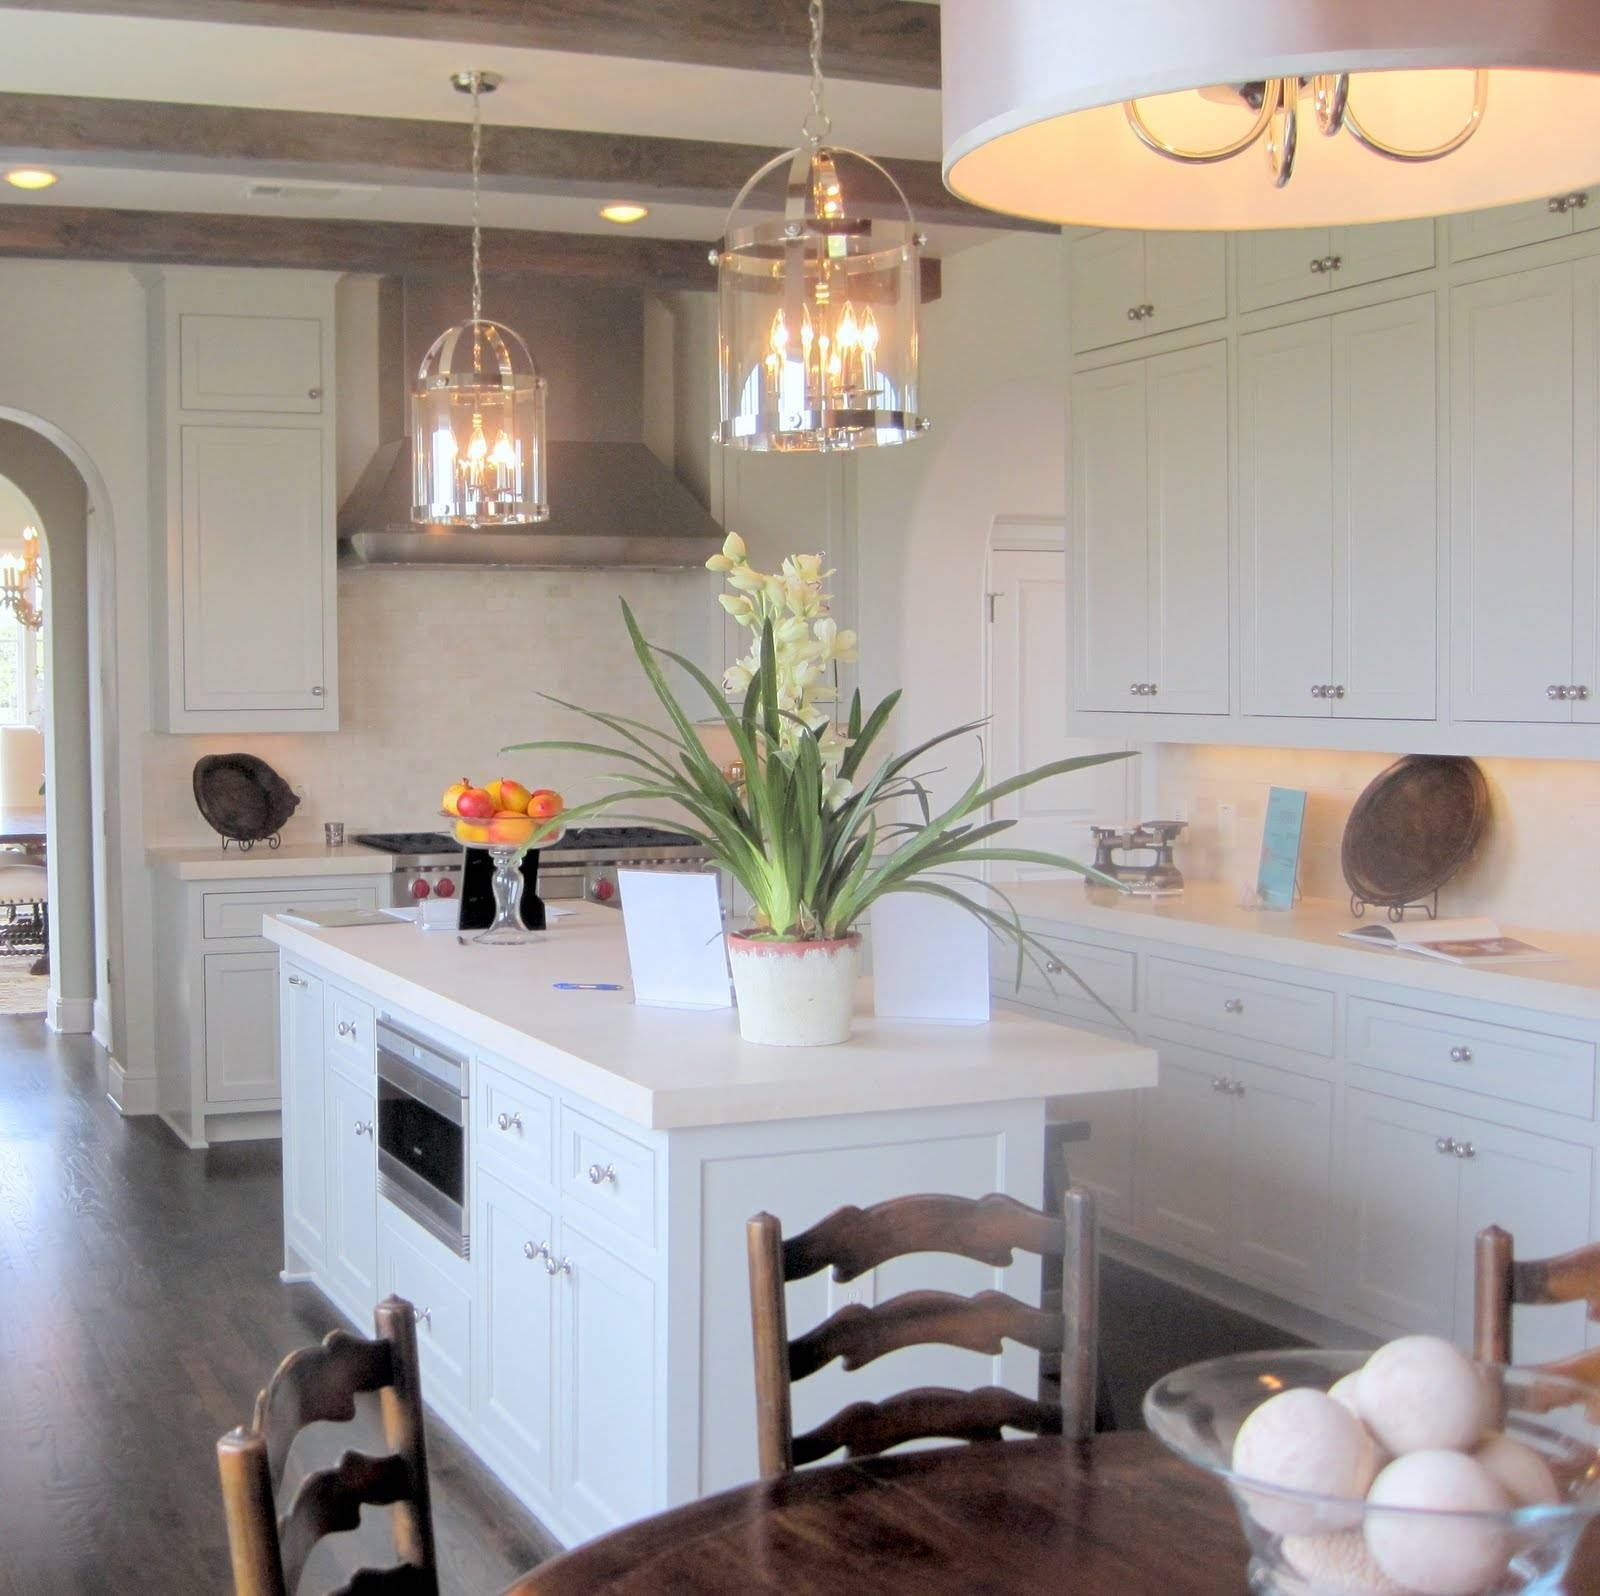 Most Decorative Kitchen Island Pendant Lighting – Registaz Throughout Lantern Style Pendant Lighting (View 12 of 15)